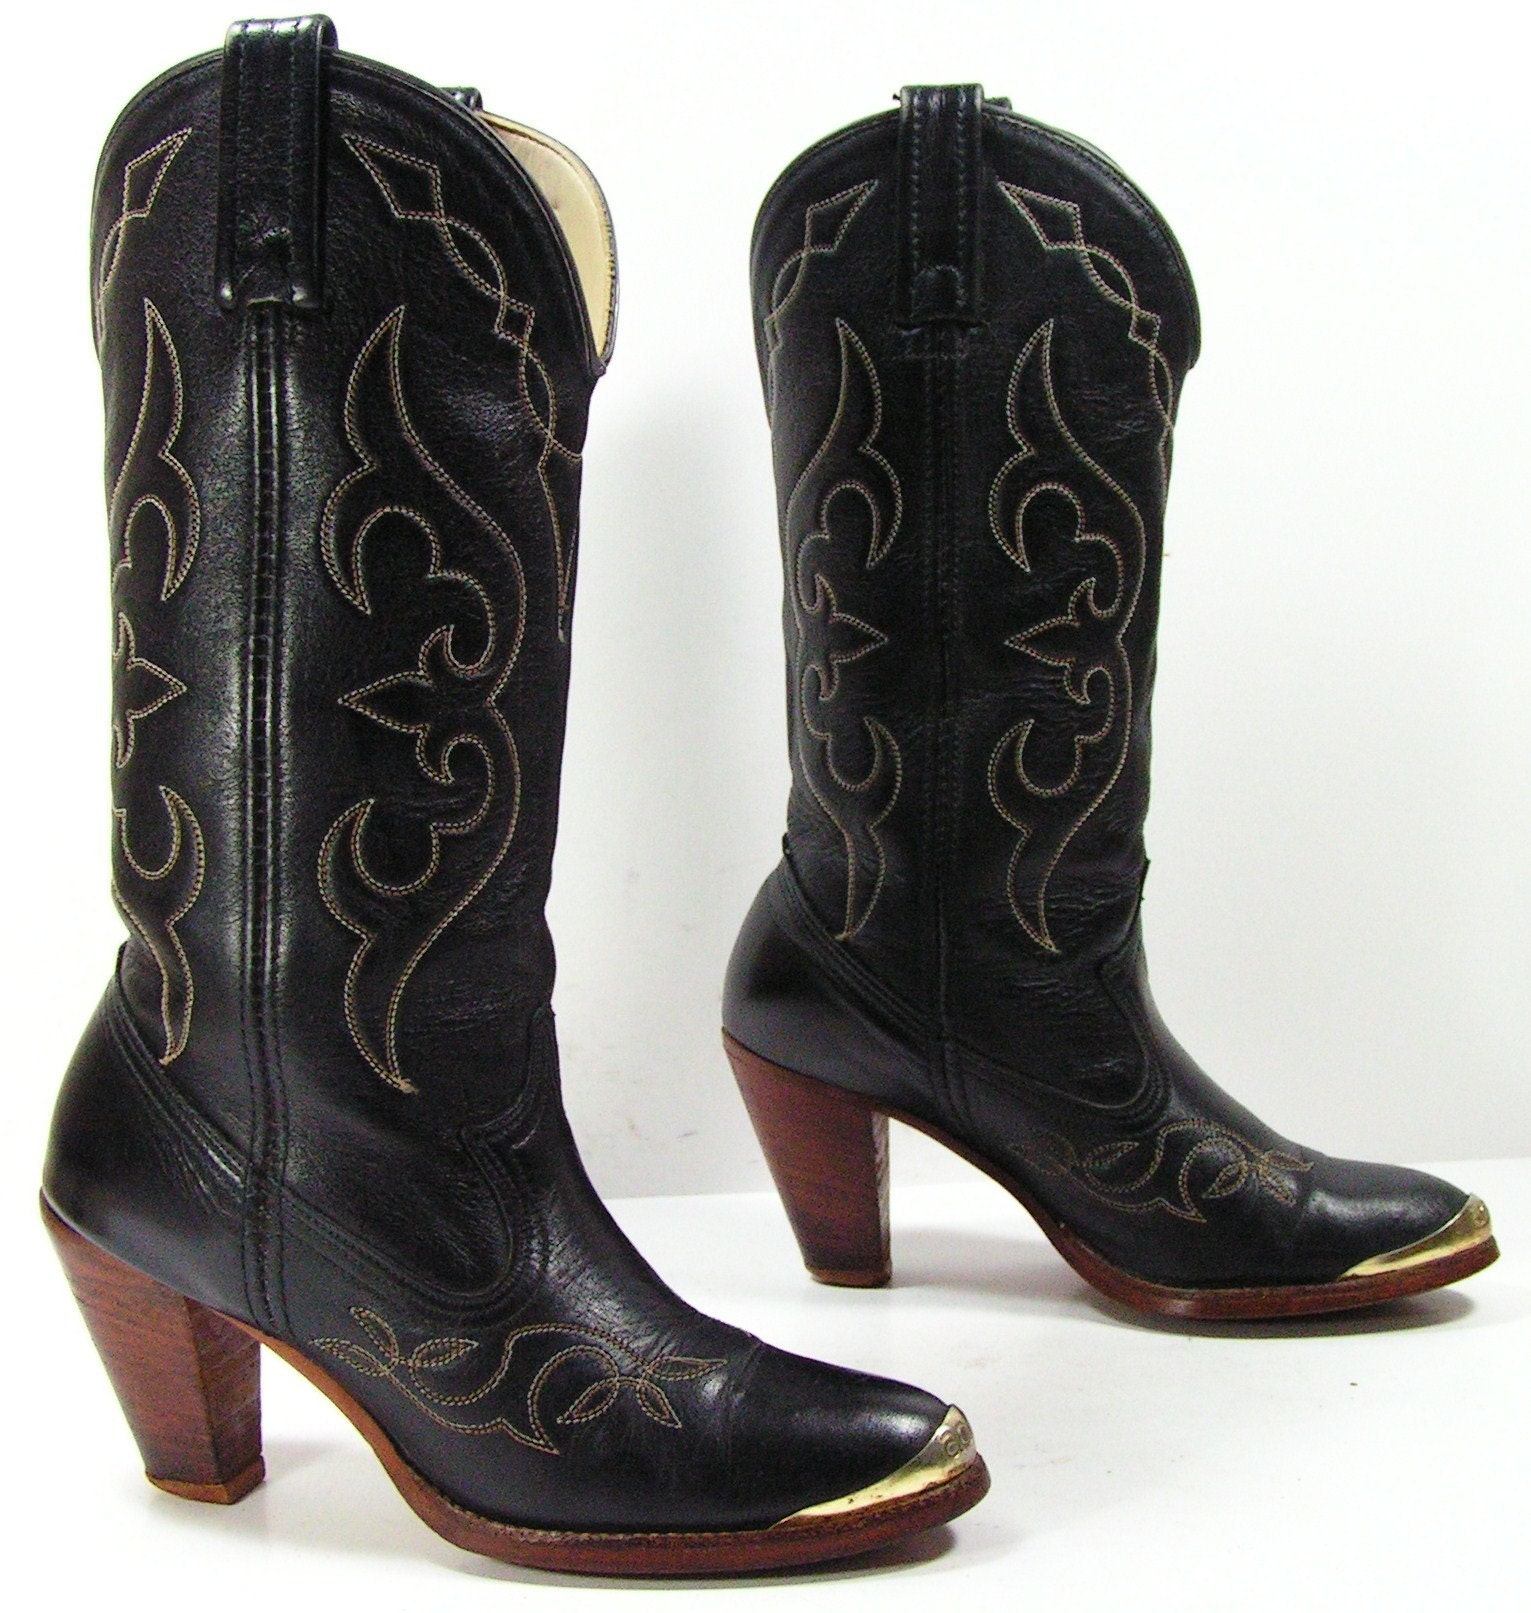 vintage cowboy boots womens 5 M B acme black high heel cowgirl